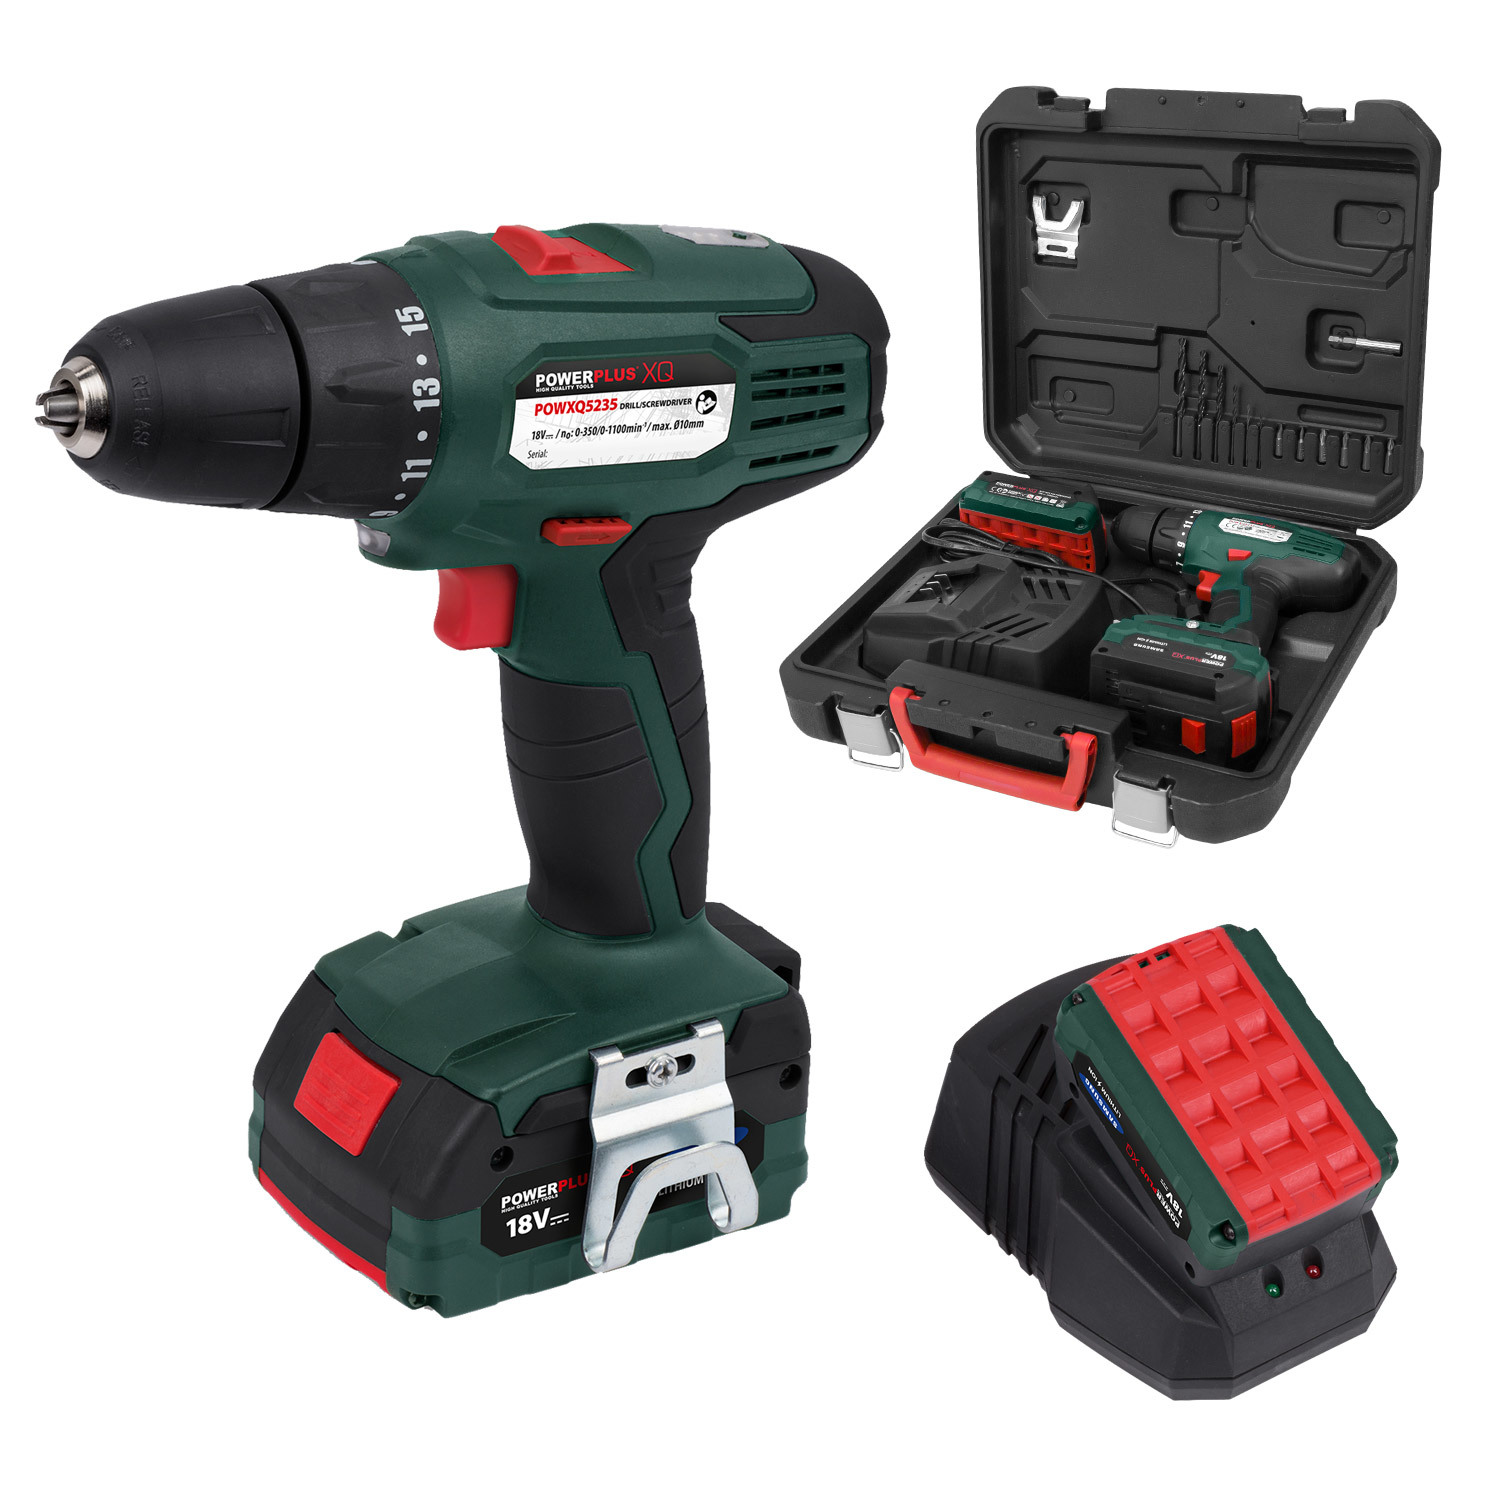 powerplus cordless screwdriver 2x lithium cordless drill. Black Bedroom Furniture Sets. Home Design Ideas